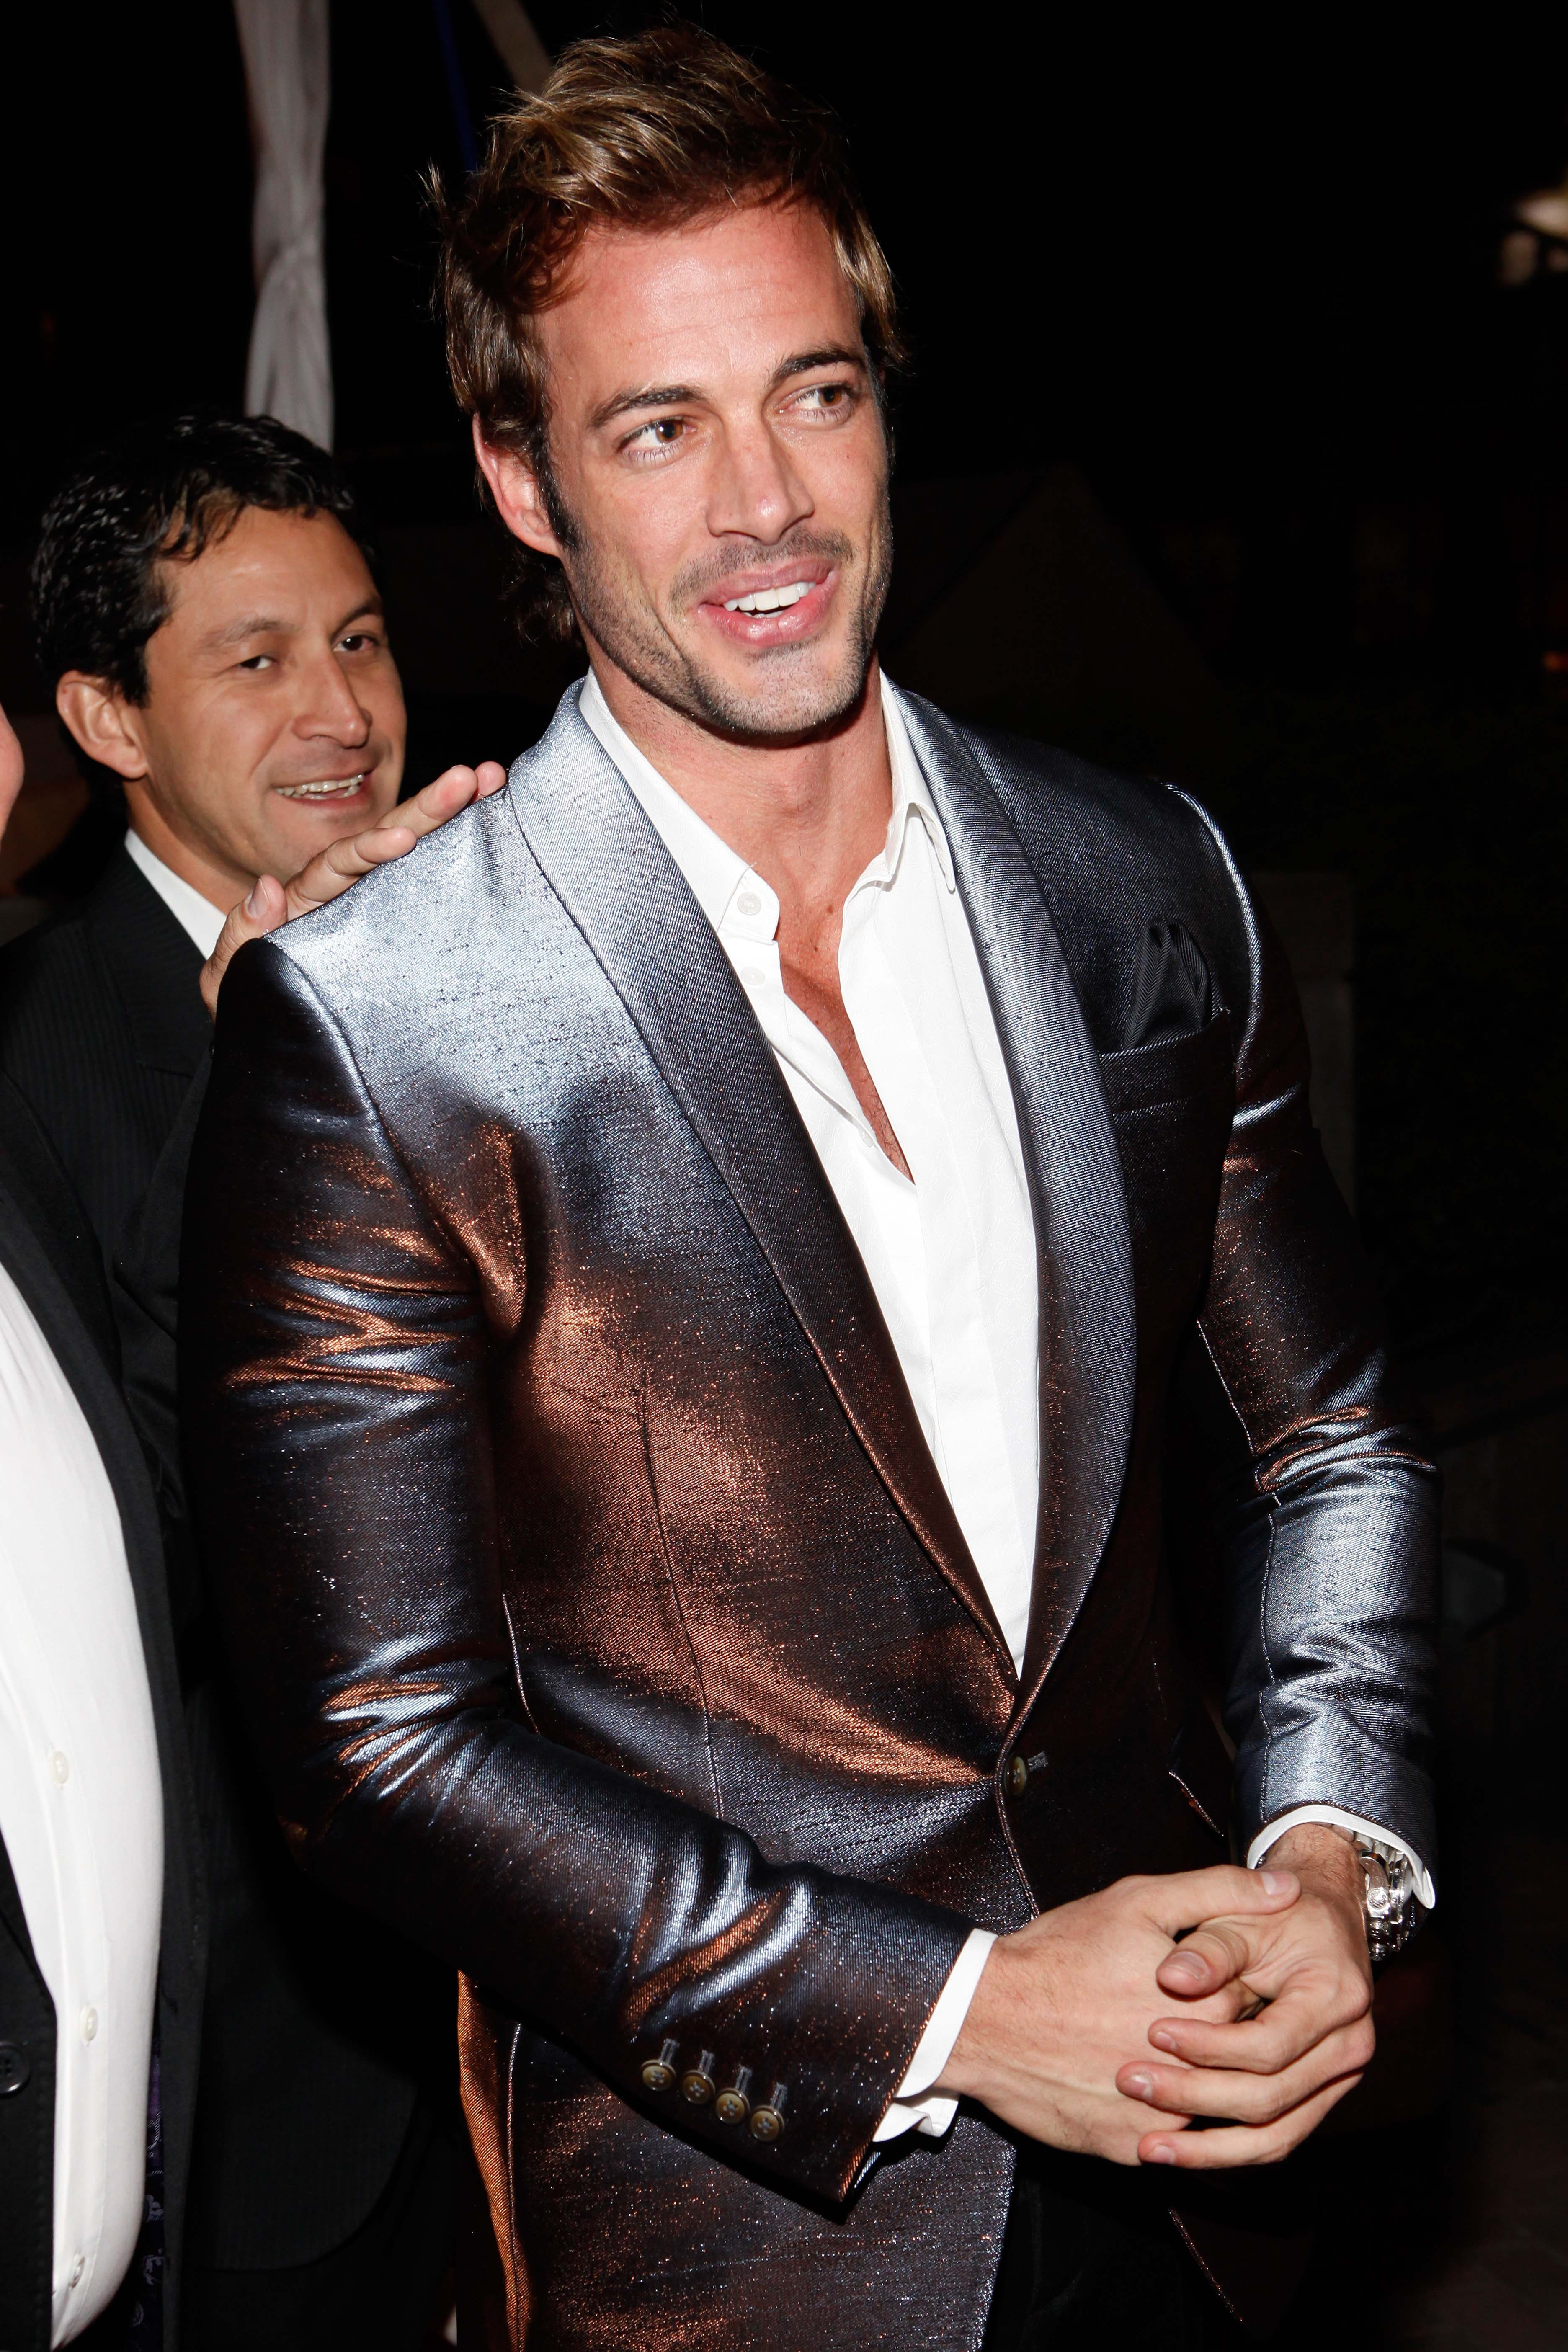 Fotos William Levy En Traje De Bao Mihai 555 Timer And 4017 Decade Counter Traffic Lights Circuit